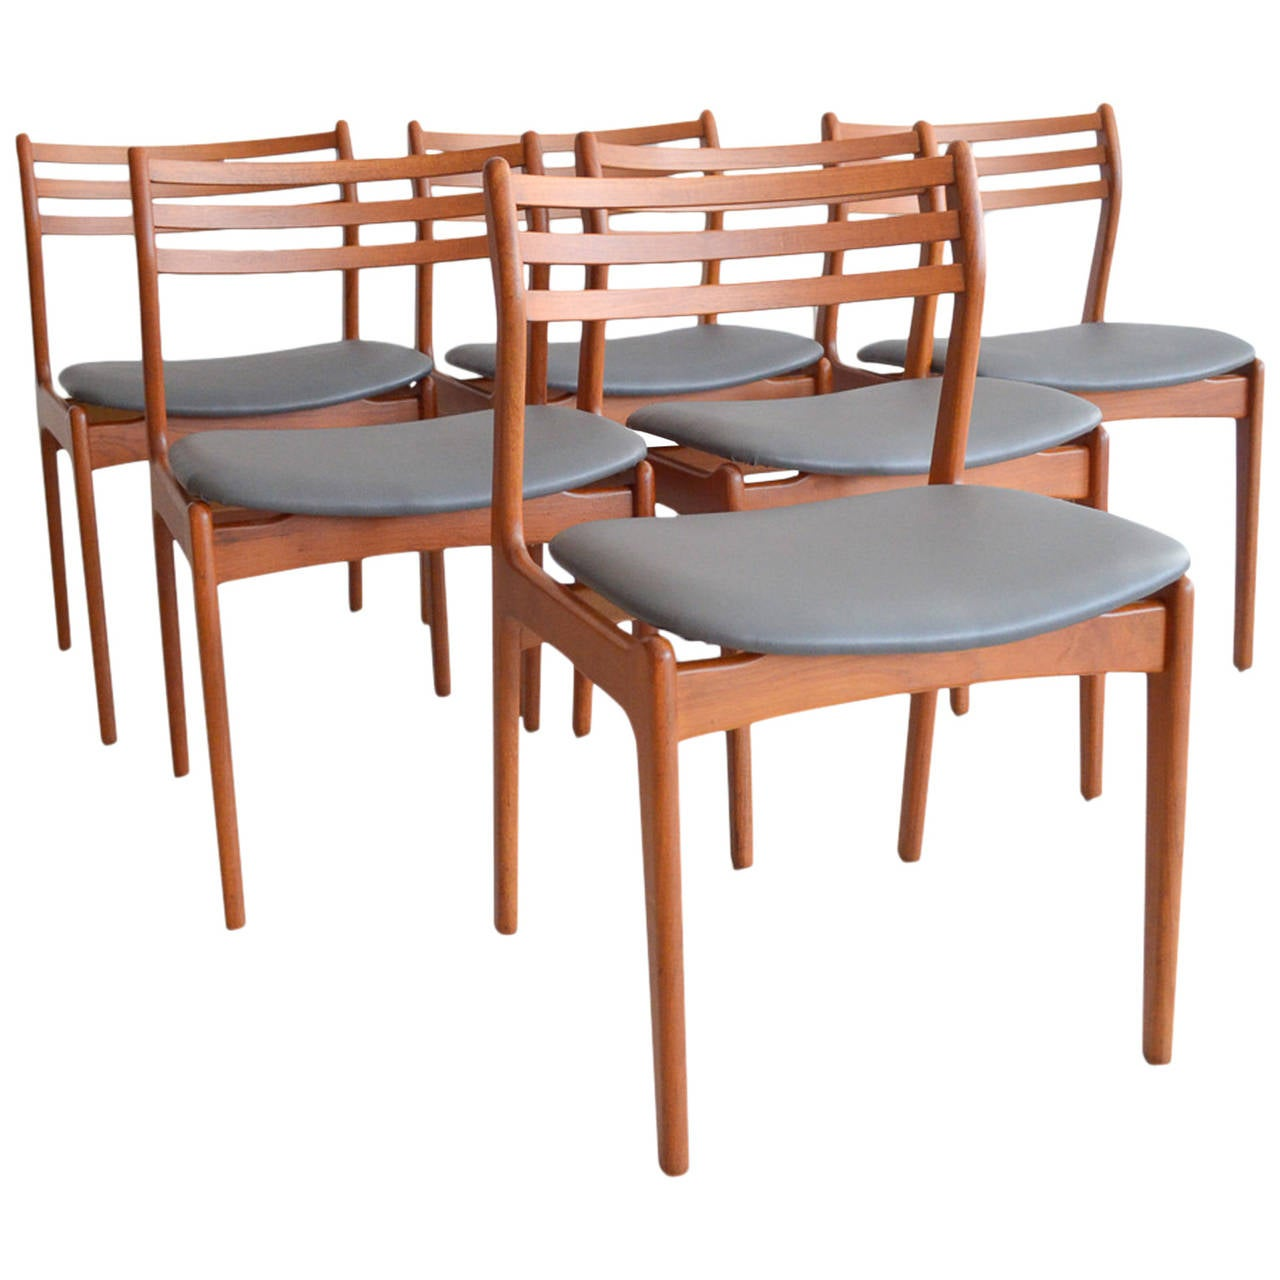 p. e. jørgensen farso stolefabrik dining chairs for sale at 1stdibs